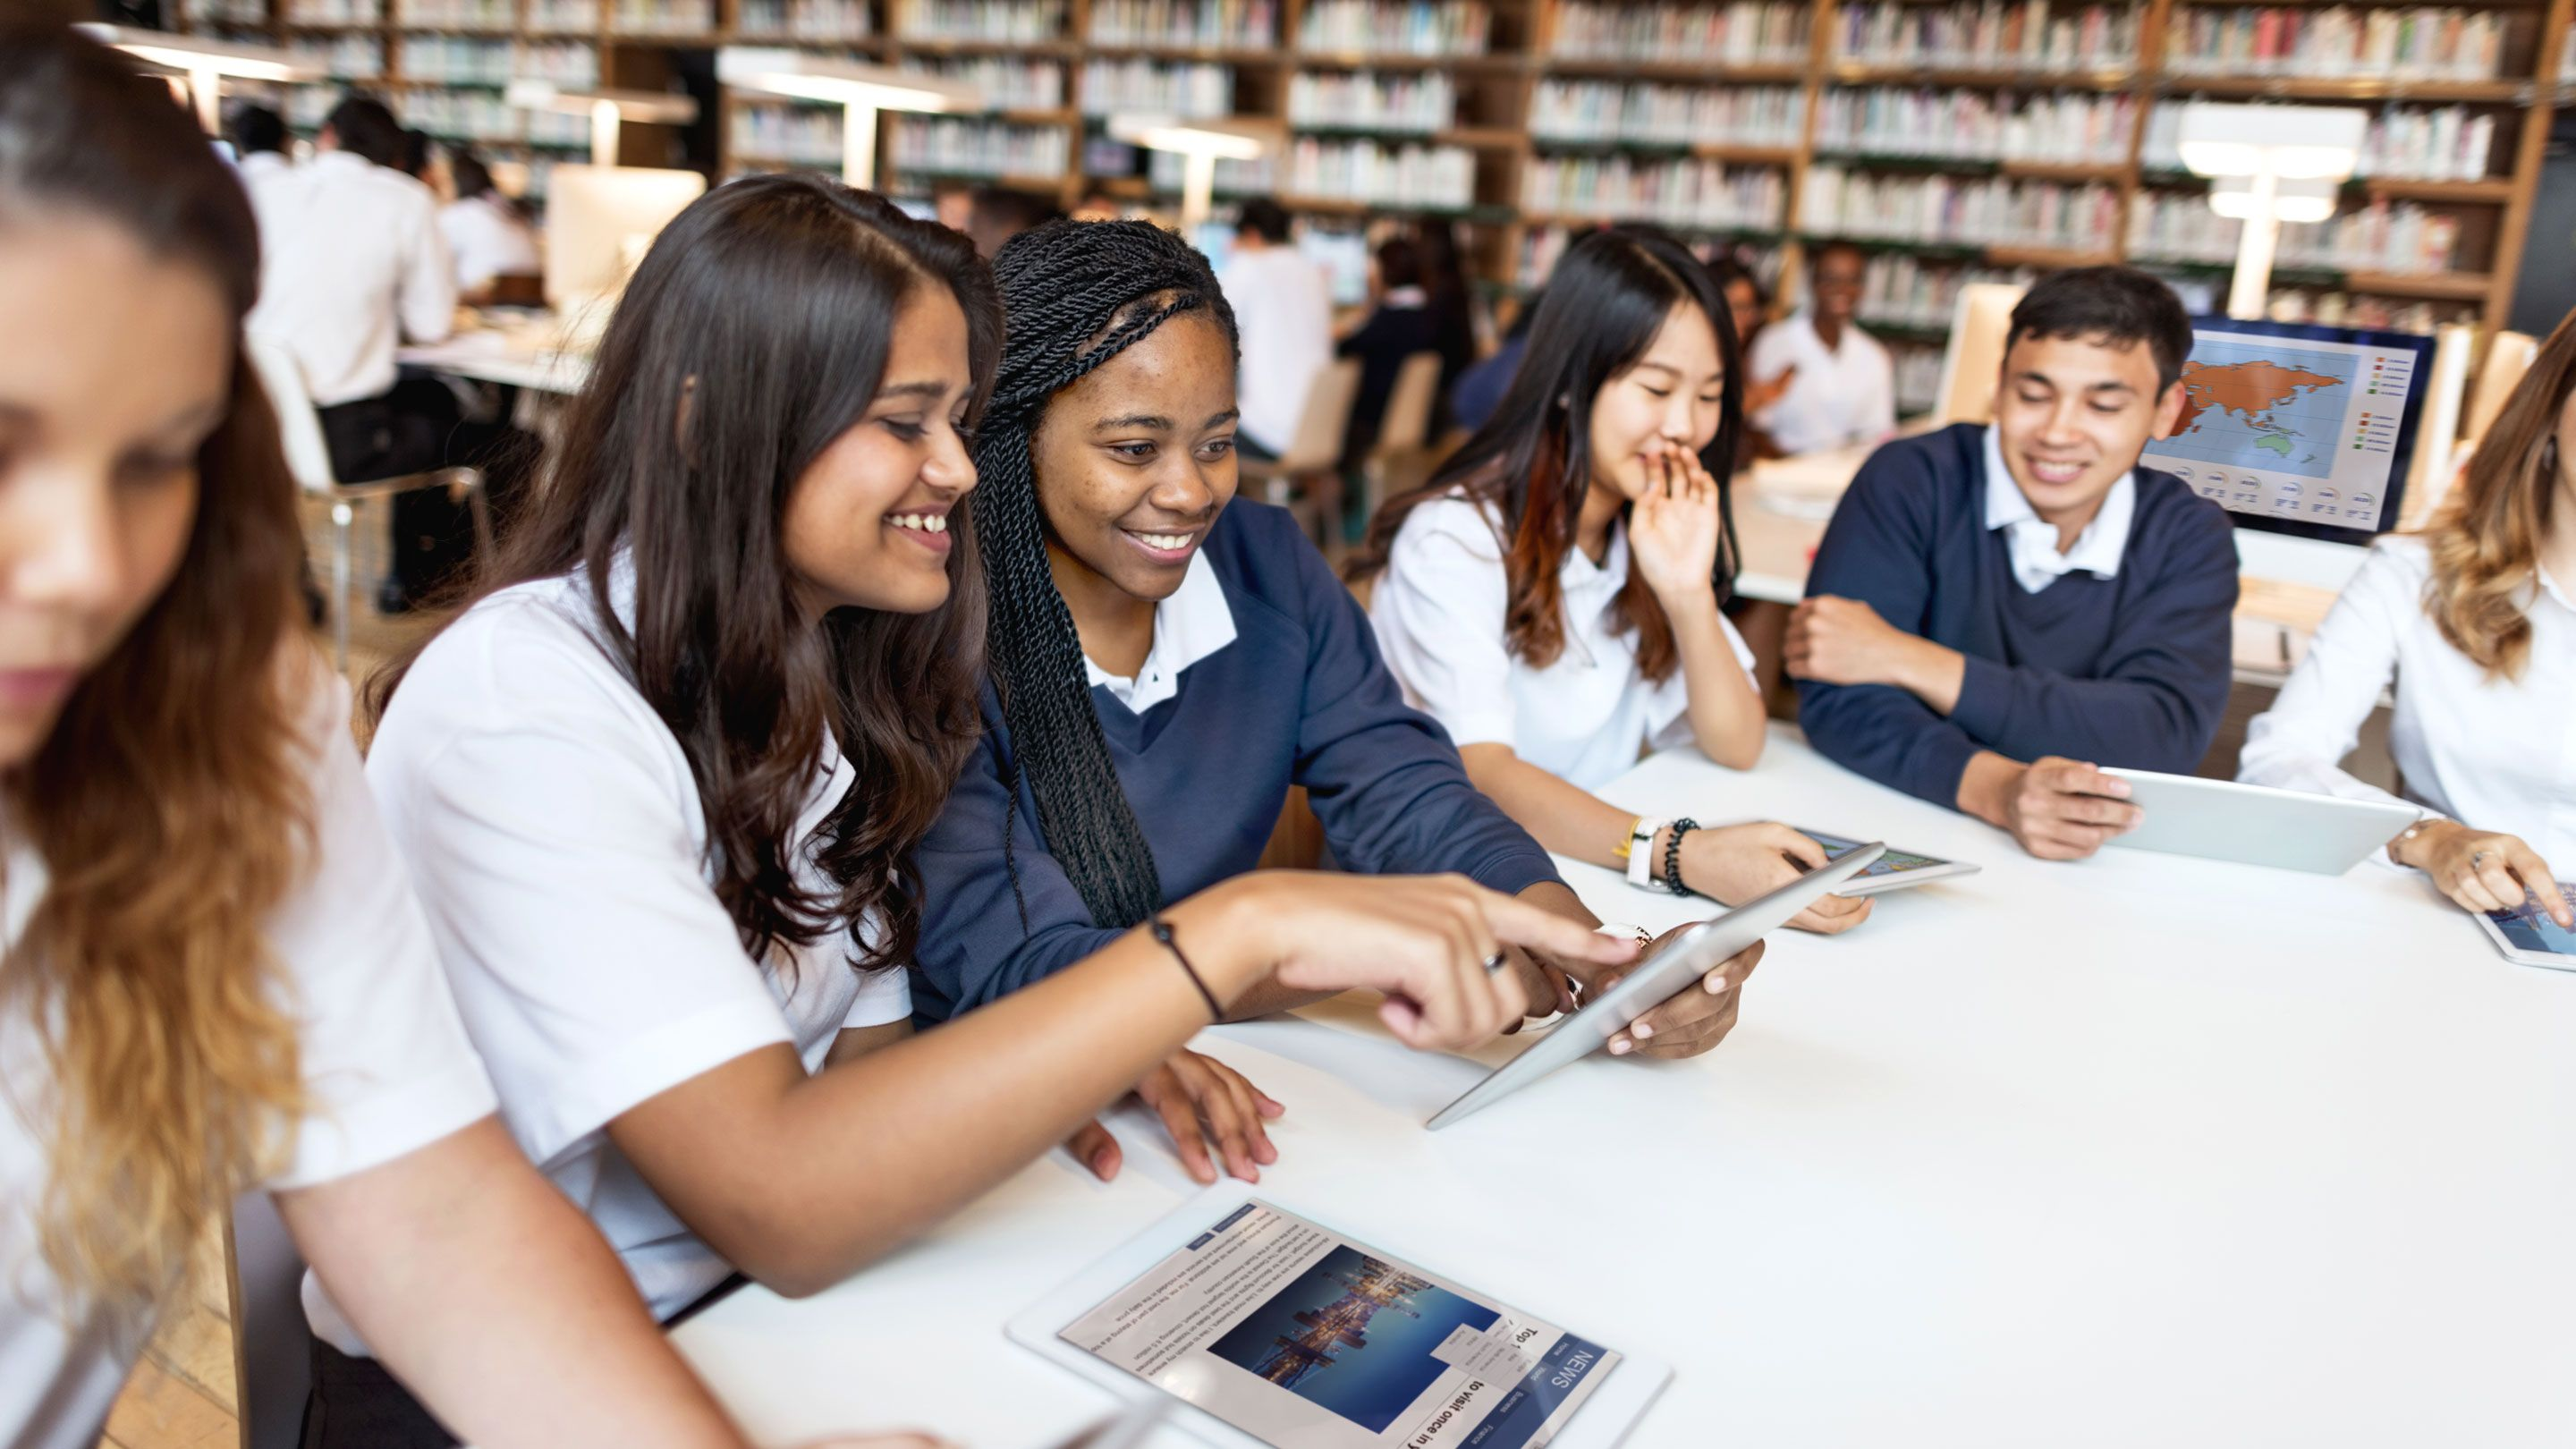 Five teenaged students are seated at a table looking at computer screens, talking, and smiling.